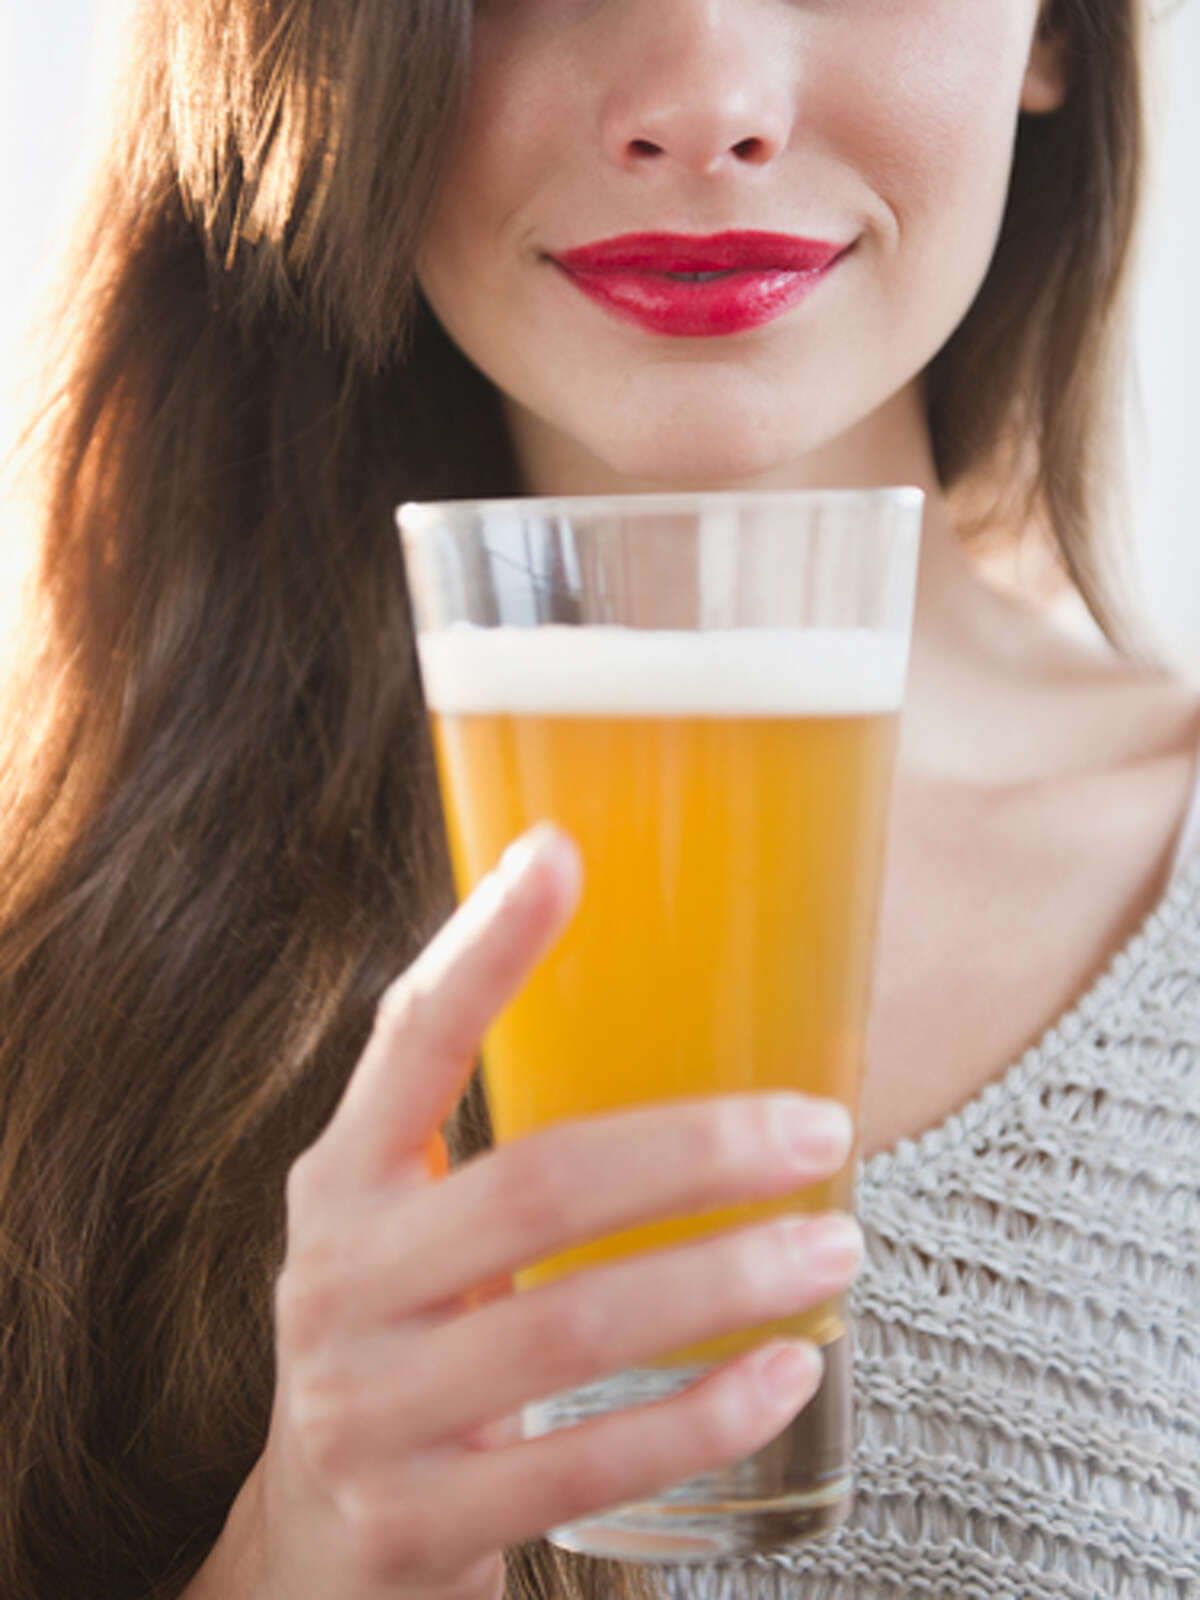 Bottoms up Americans drink more to celebrate than commiserate. But what do we drink when? Click through to find out.